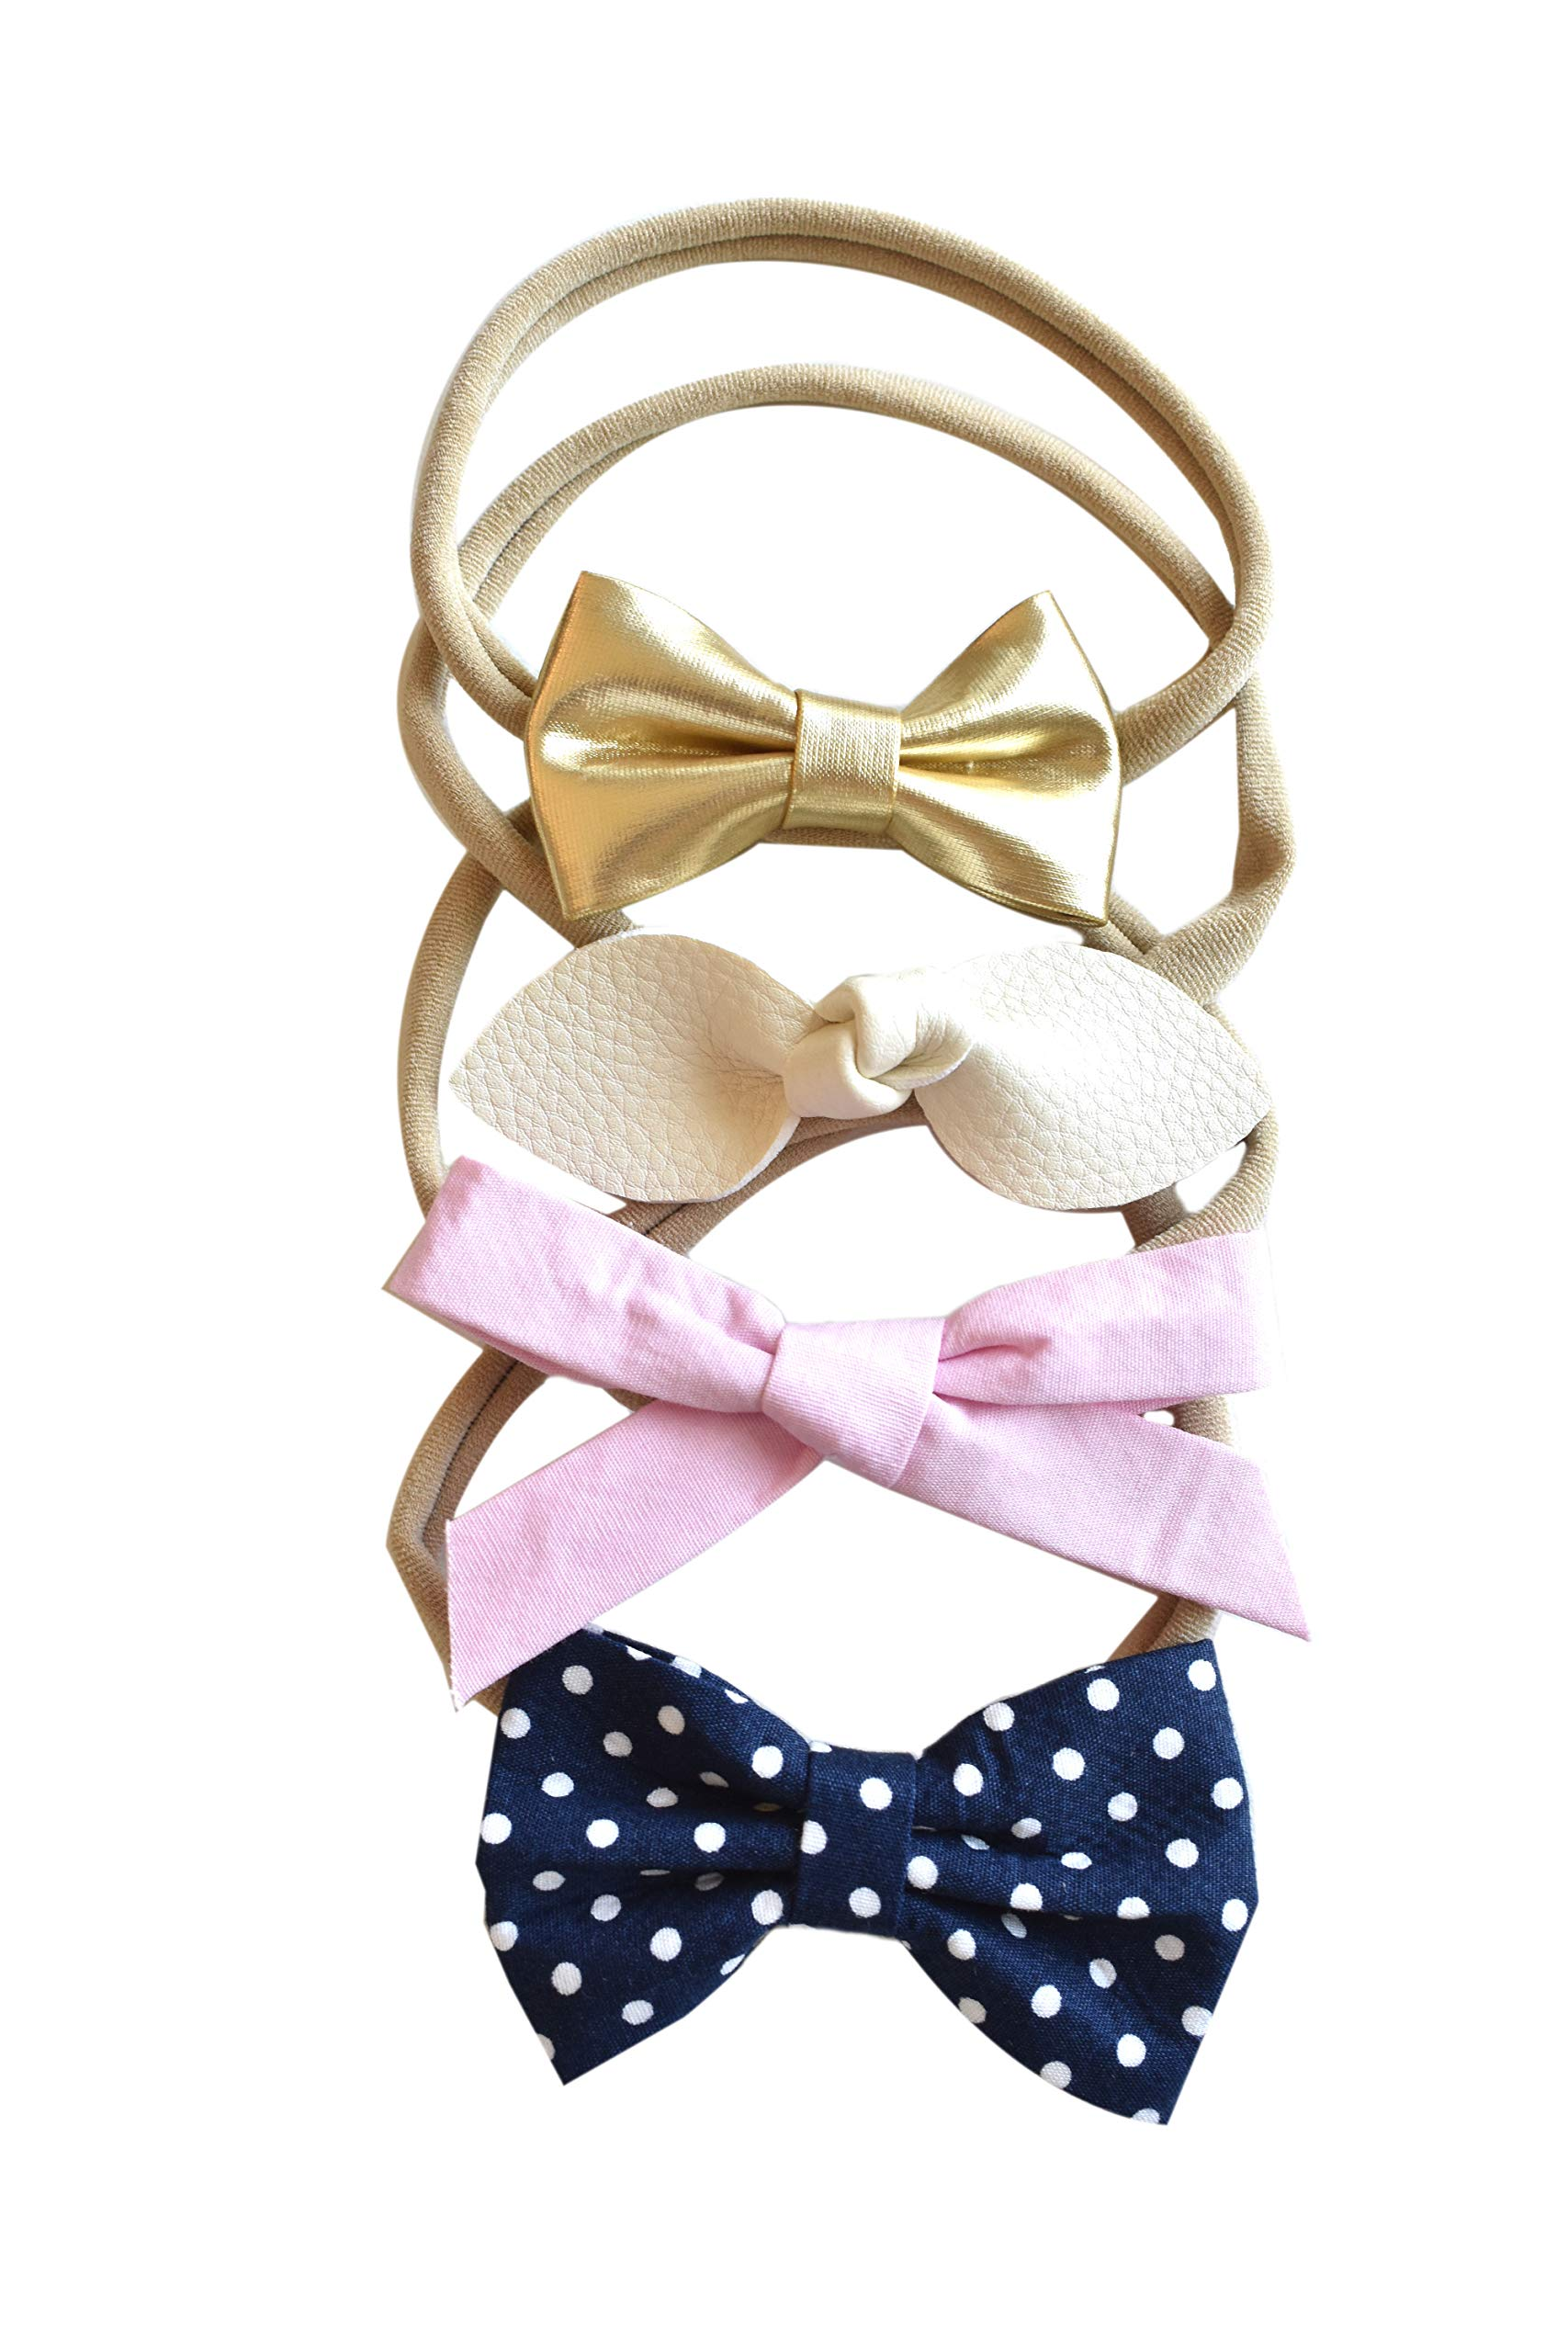 gold faux leather bow with peach and gold polka dots headband